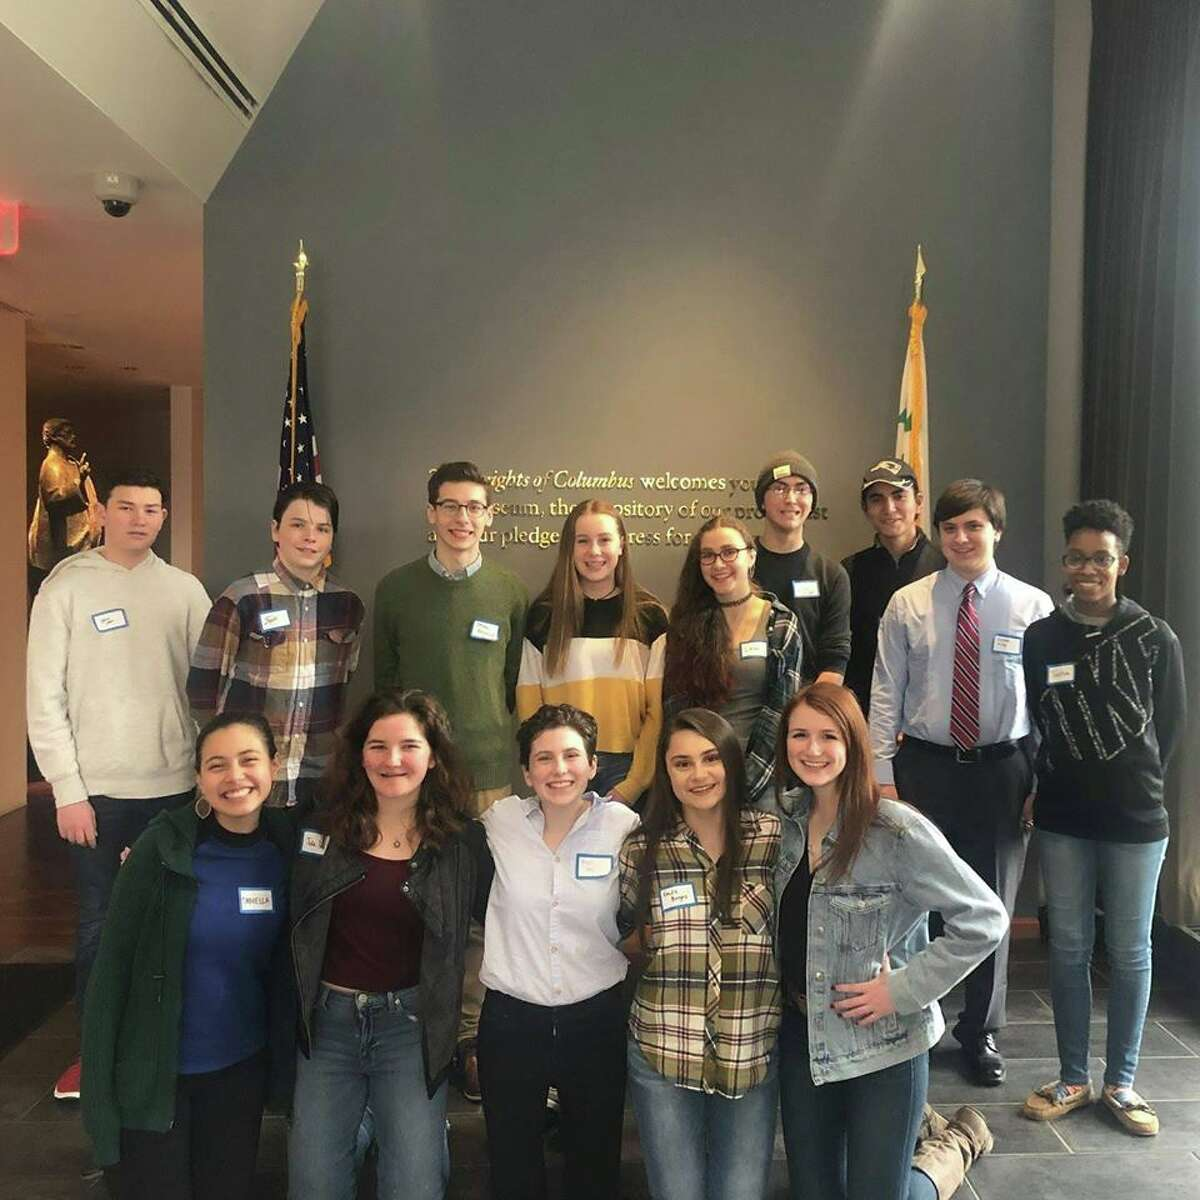 Ridgefield High School sophomores Aaron Cohen and Mairead Lacey are two of 15 students who will participate in a World War I trench restoration program in Seicheprey, France through the Connecticut Heritage Foundation this summer.